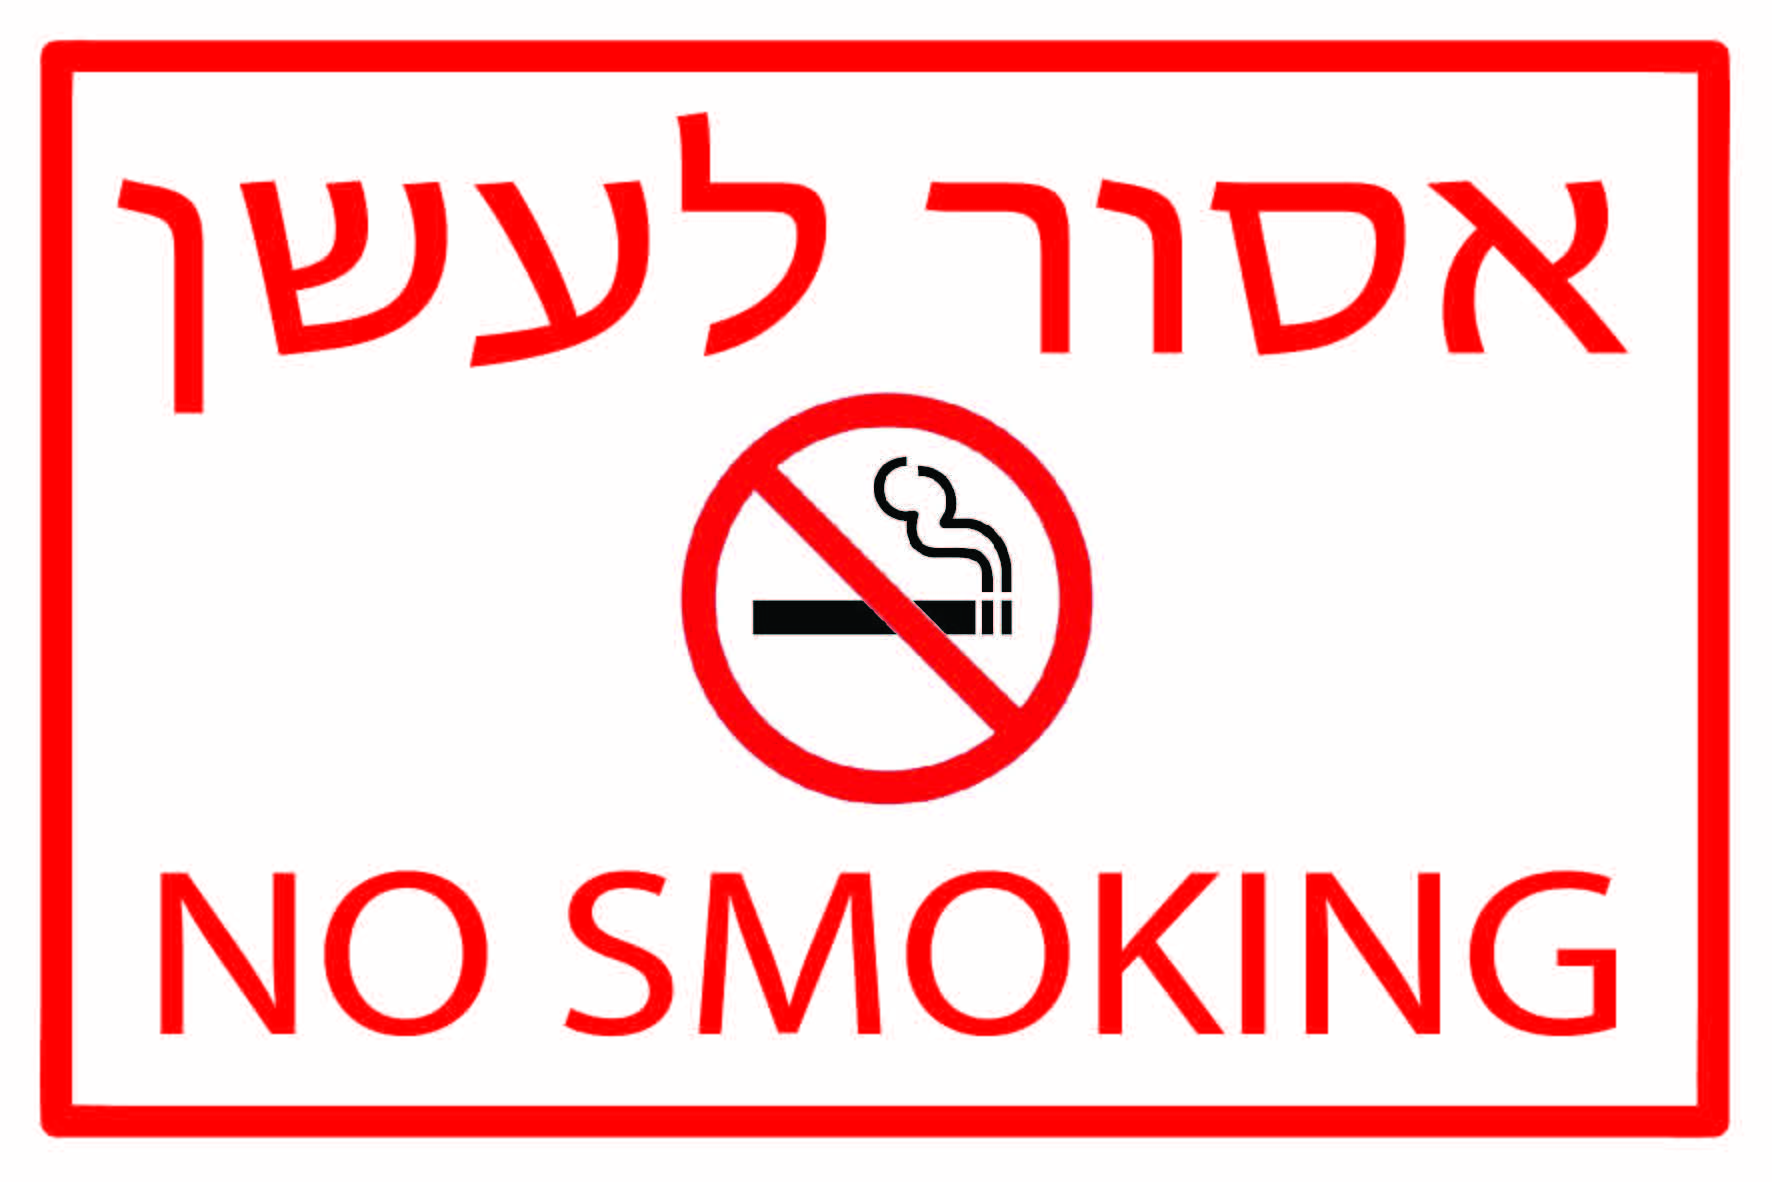 אסור לעשן - NO SMOKING גדלים לפי דרישה